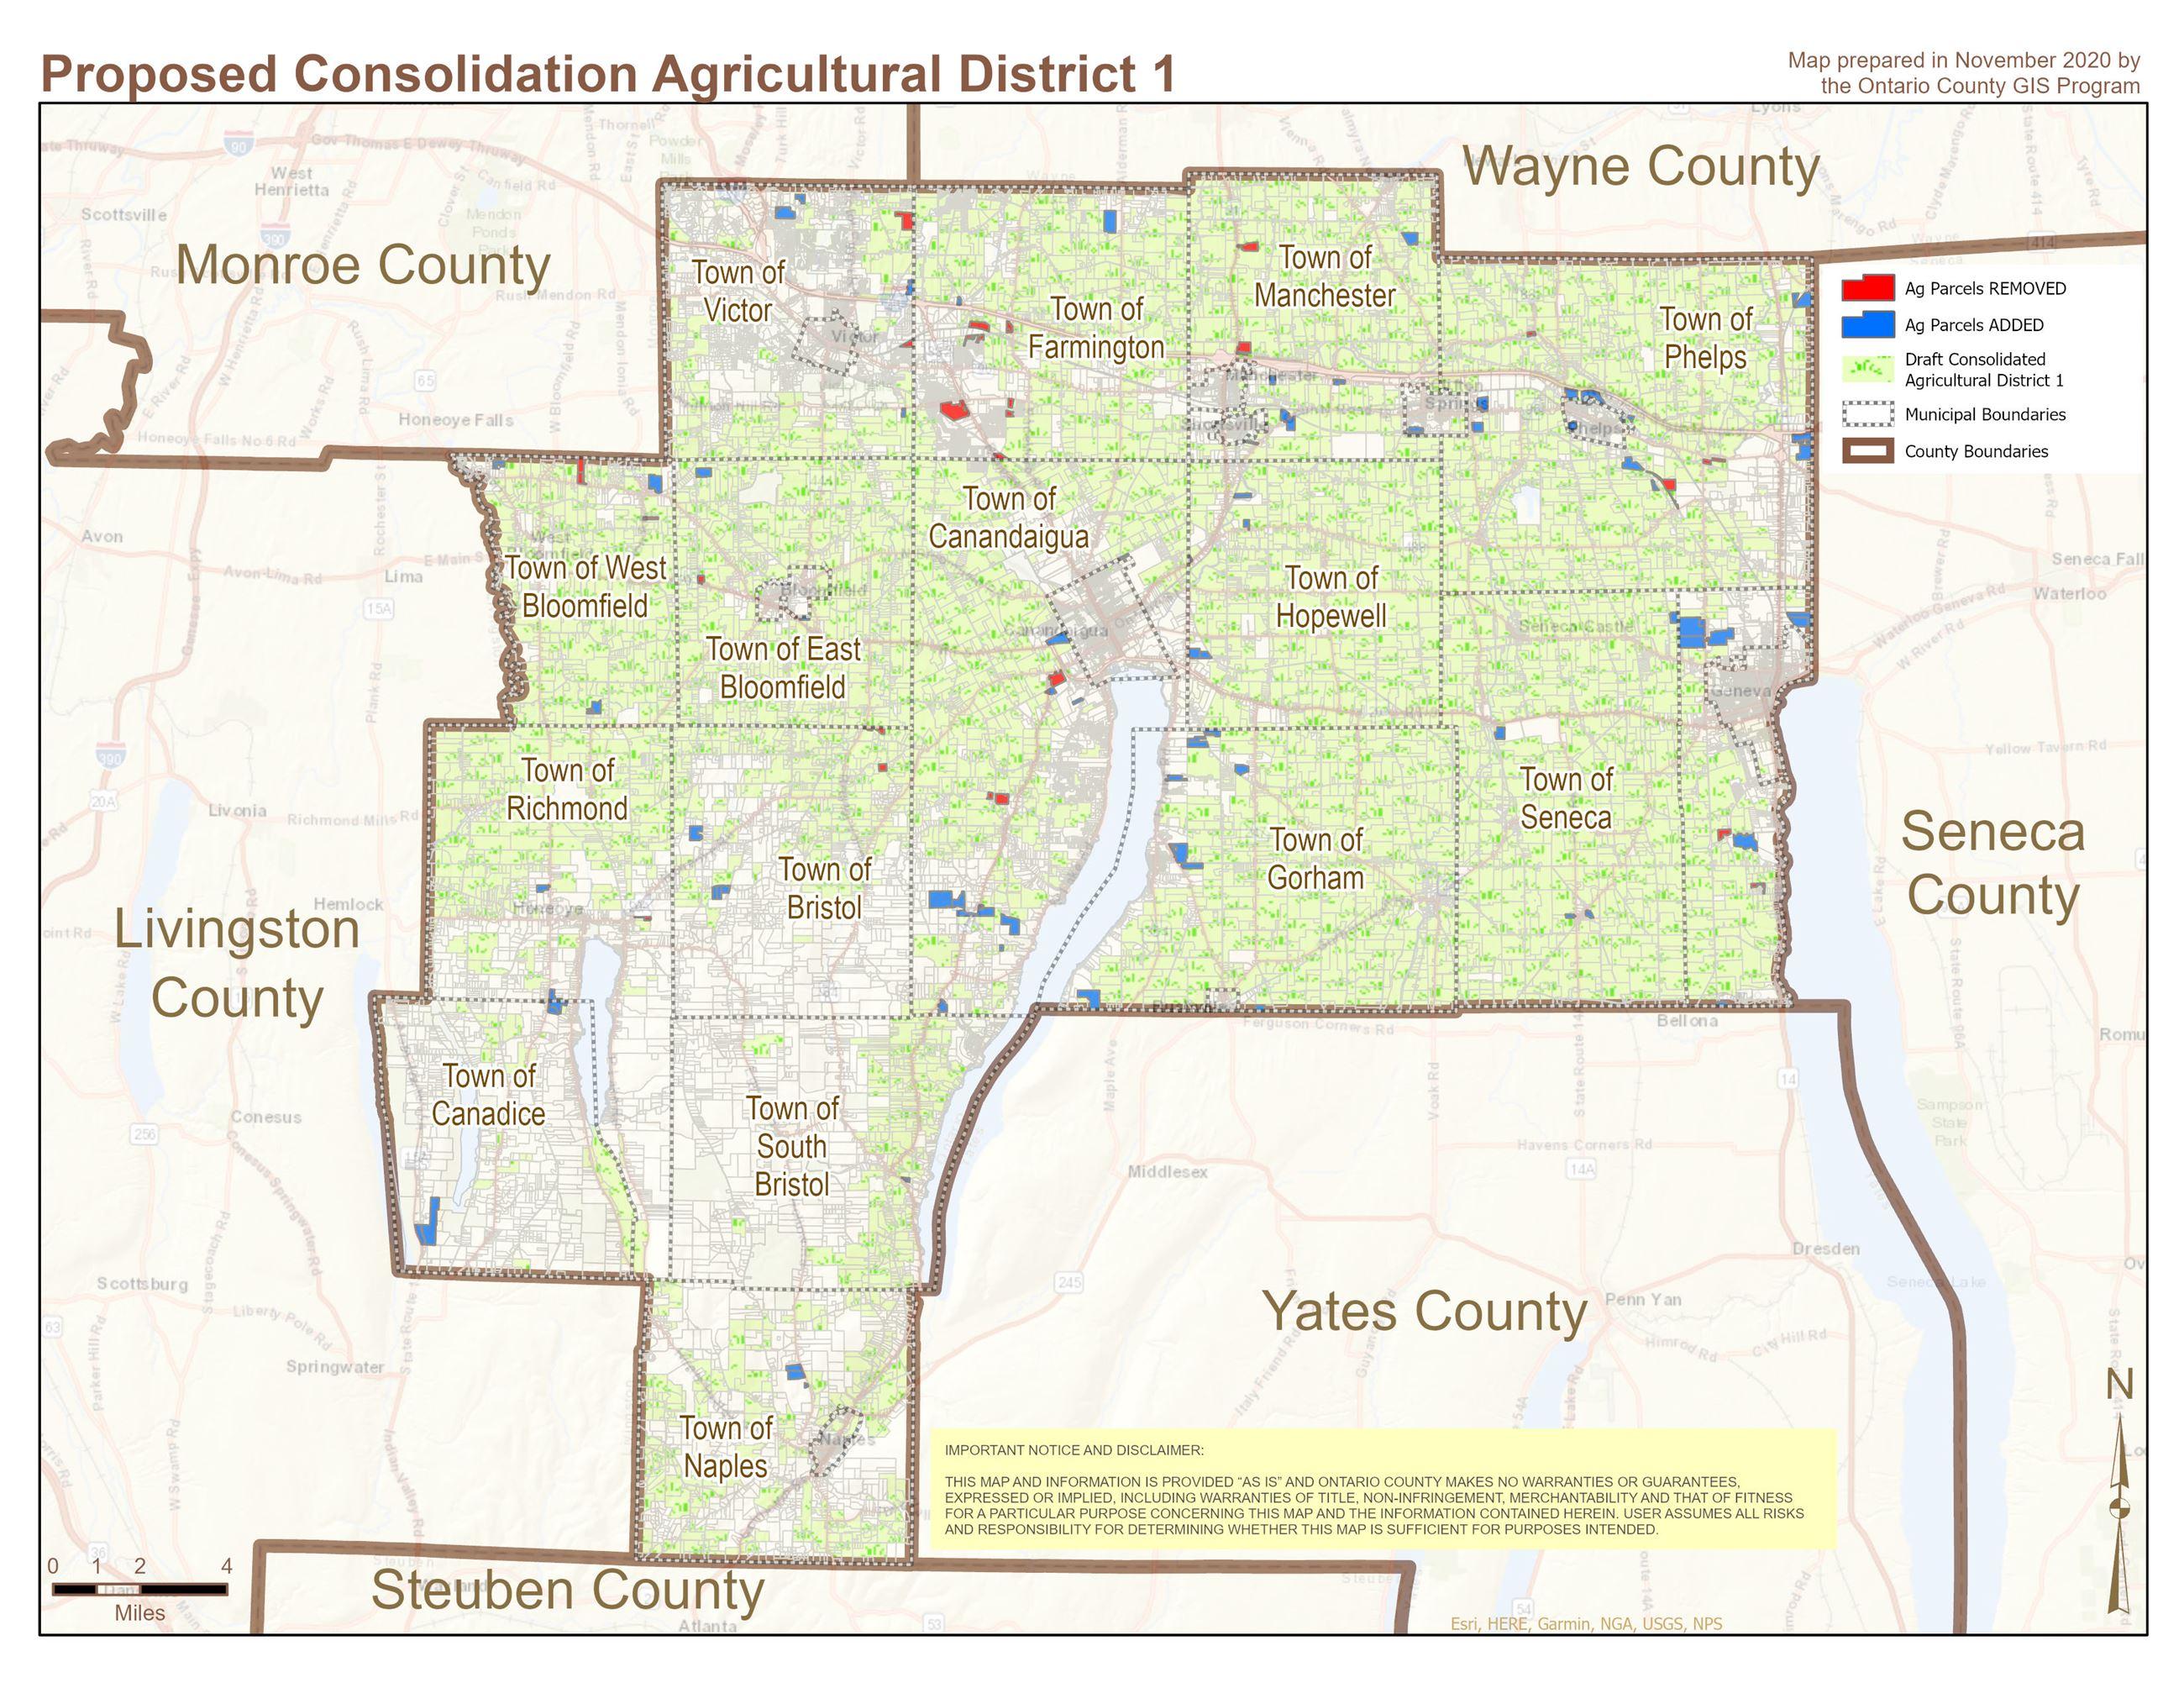 Proposed Consolidation Agricultural District 1 Map